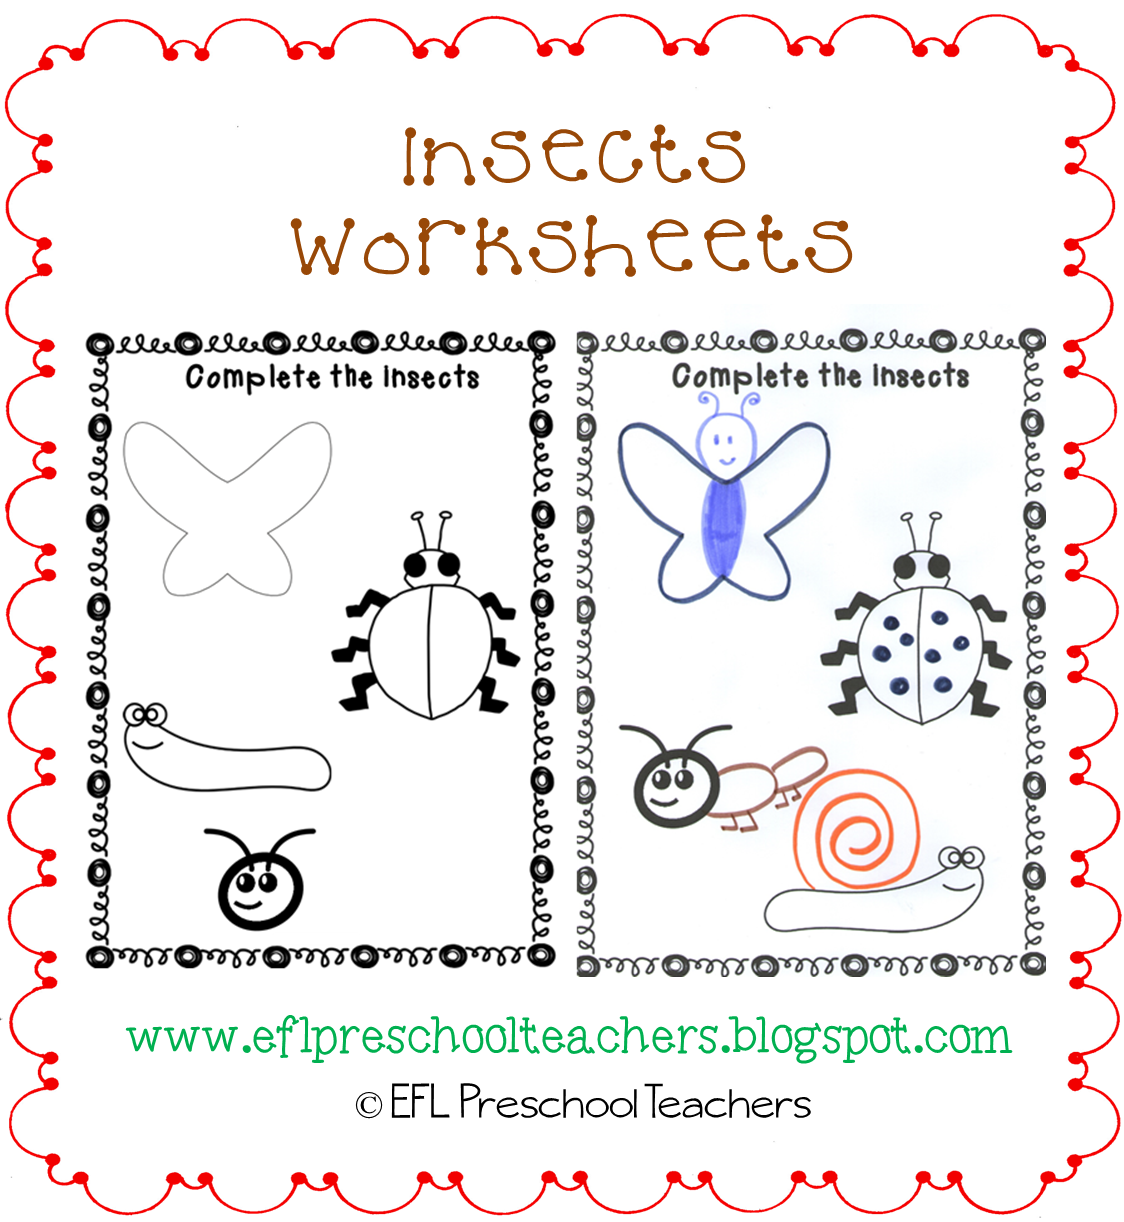 Esl Efl Preschool Teachers Insects Worksheets And More